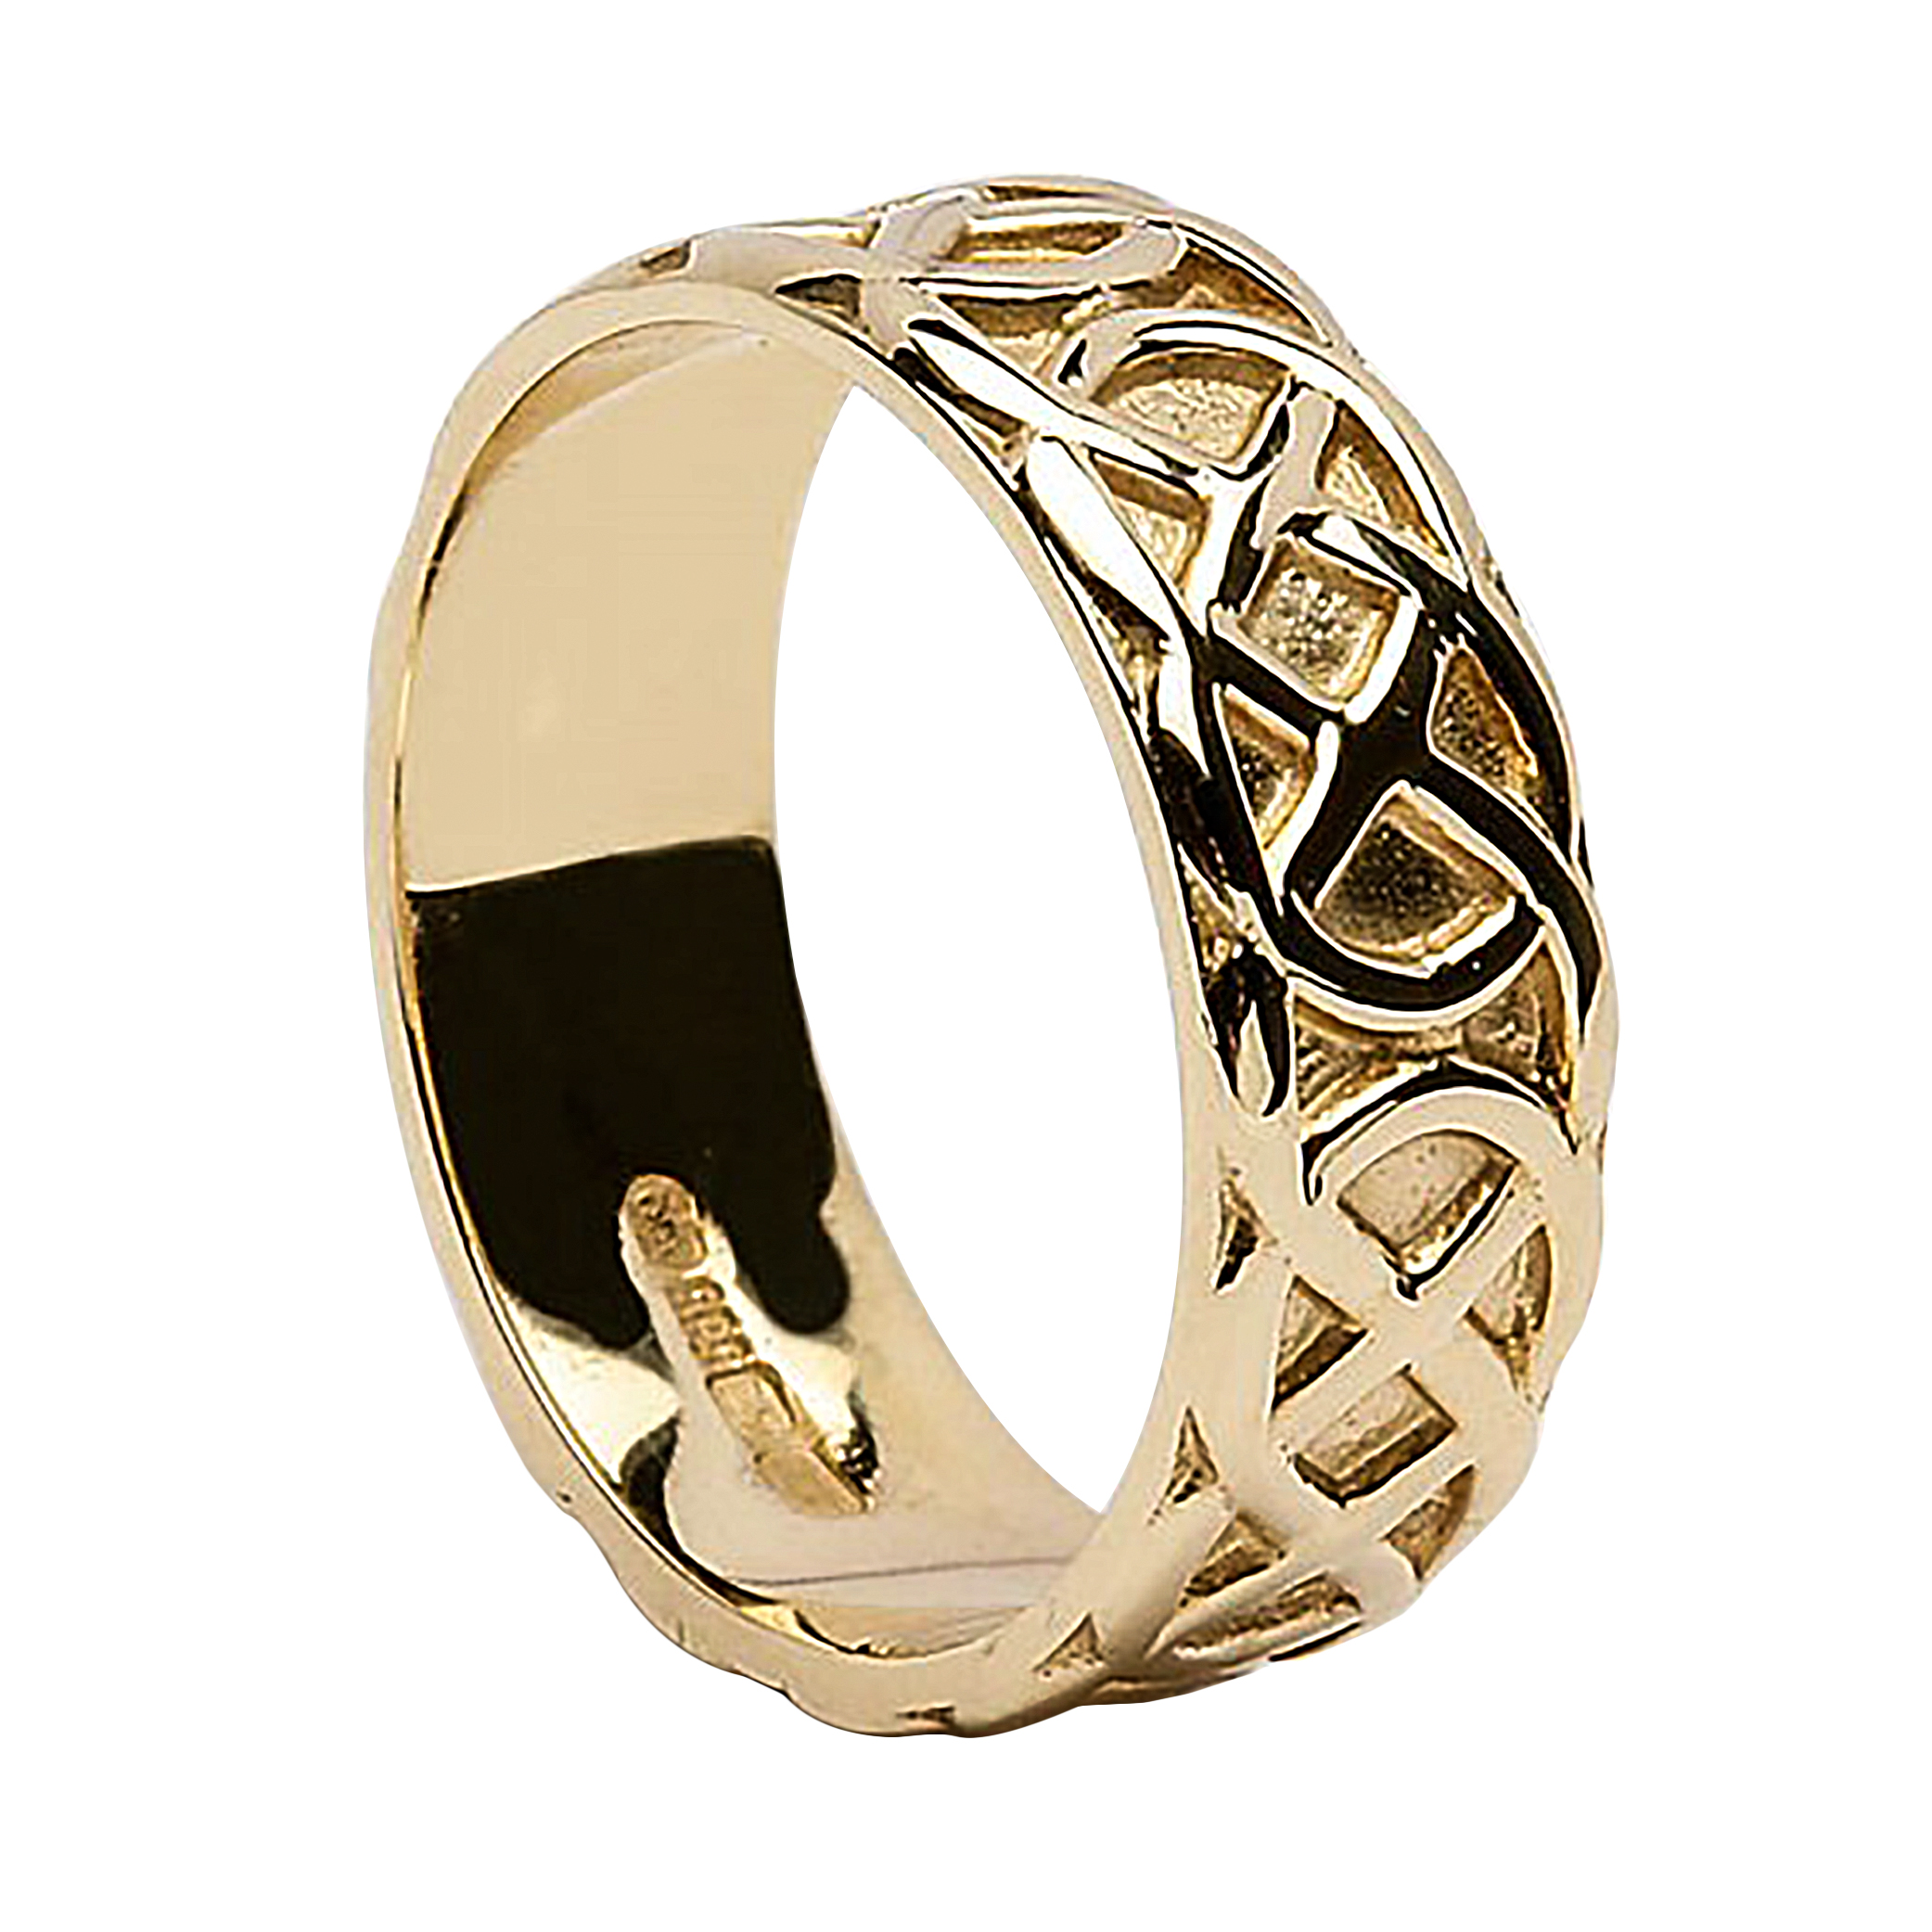 gold engagement yg b real jacket womens cut palanquin diamond round dia bands ring itm